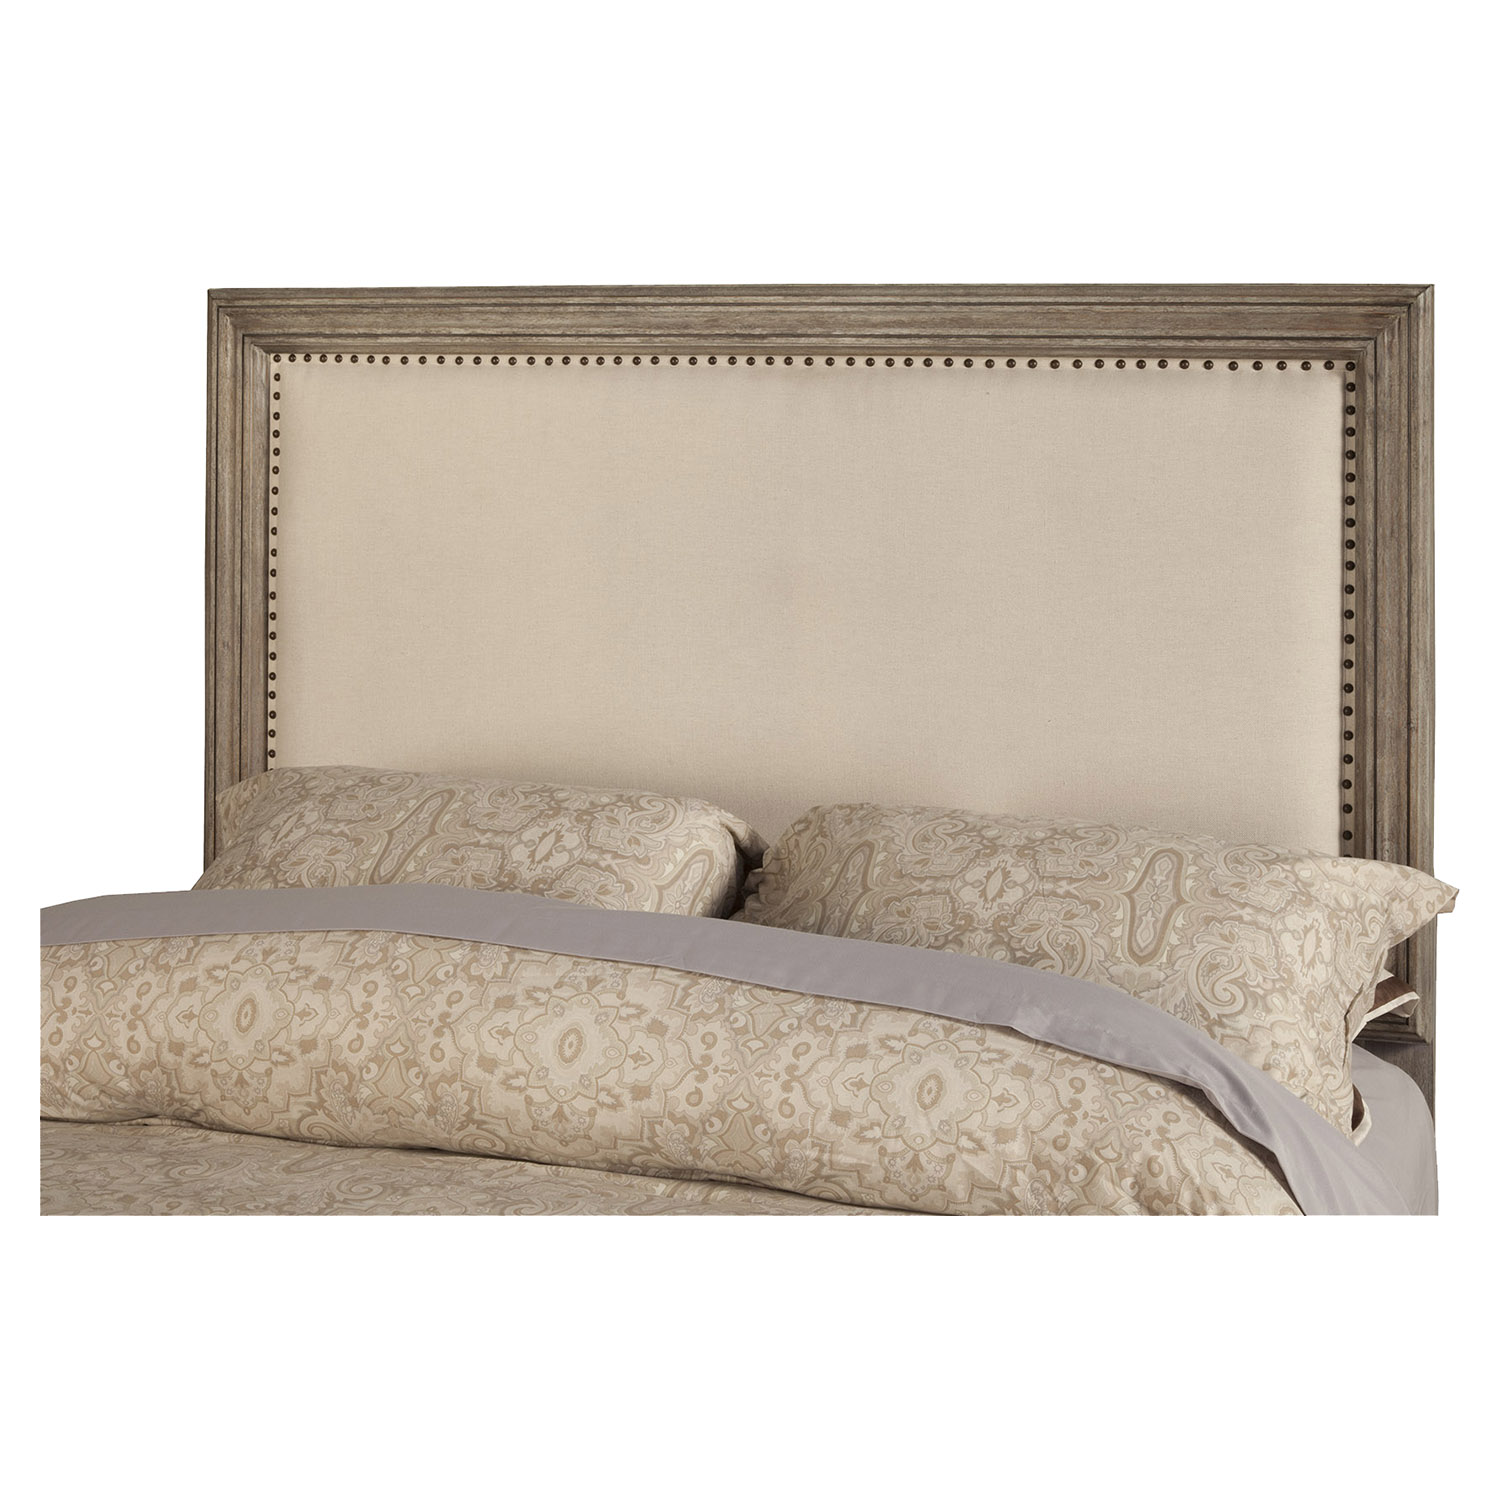 Camilla Panel Bed - Antique Gray, Upholstered Headboard, Nailheads - ALP-1800-BED